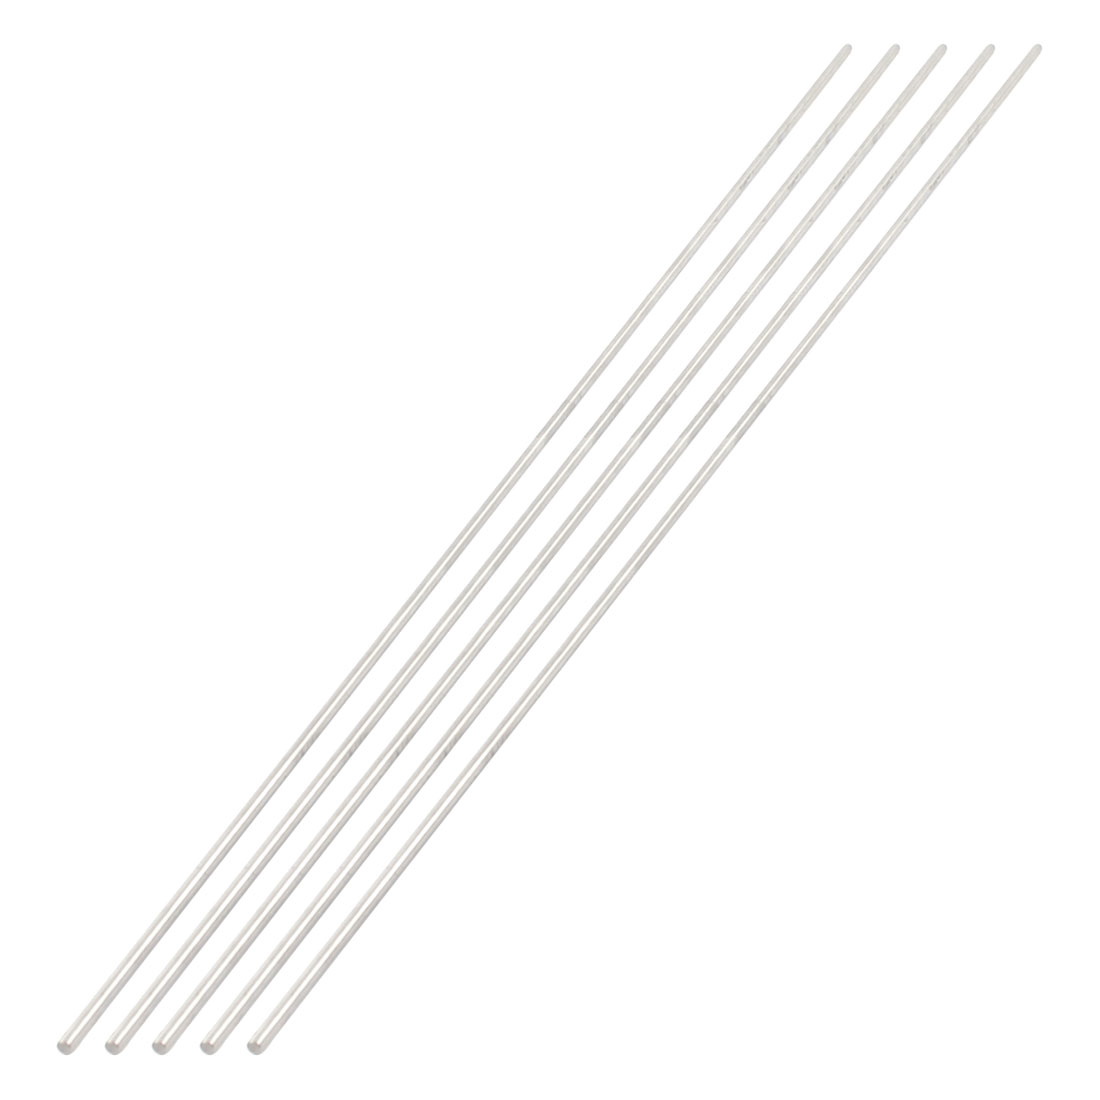 5 Pcs 3mm Diameter 450mm Length Stainless Steel RC Car Gear Axle Rod